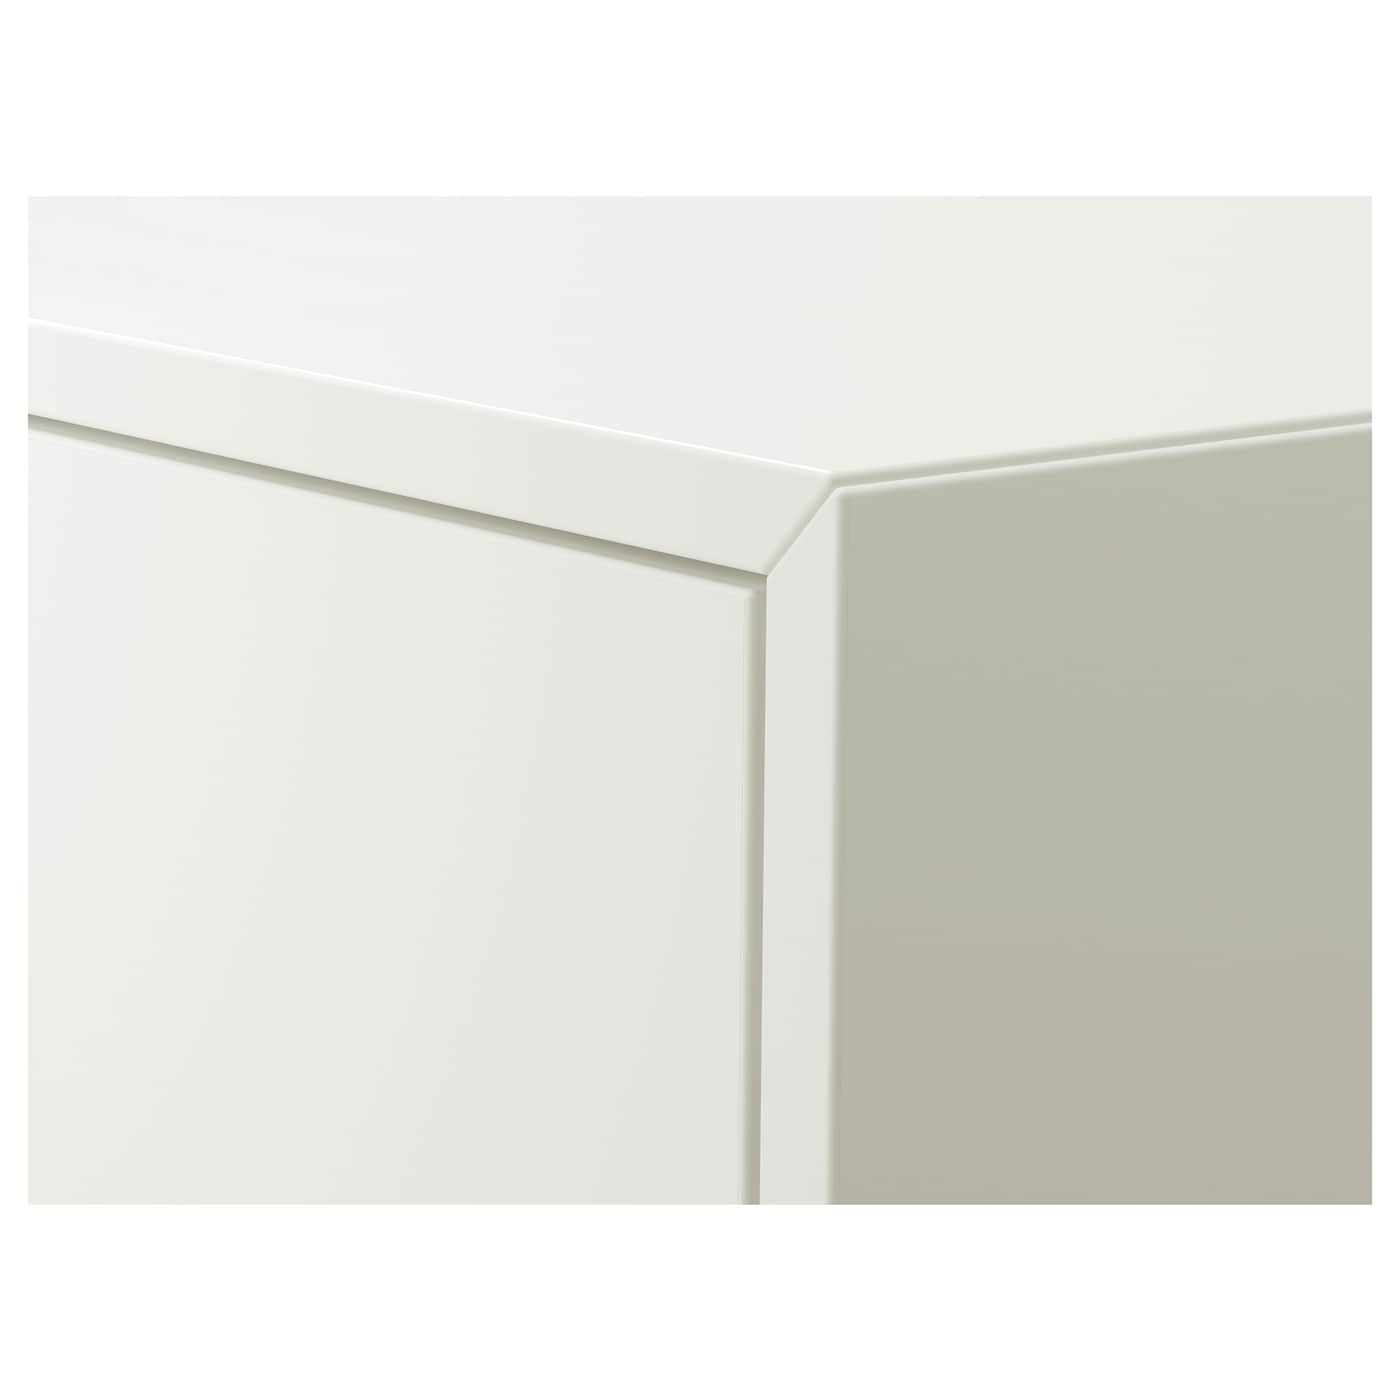 """EKET Cabinet with 2 drawers, white, 27 1/2x13 3/4x13 3/4 """""""